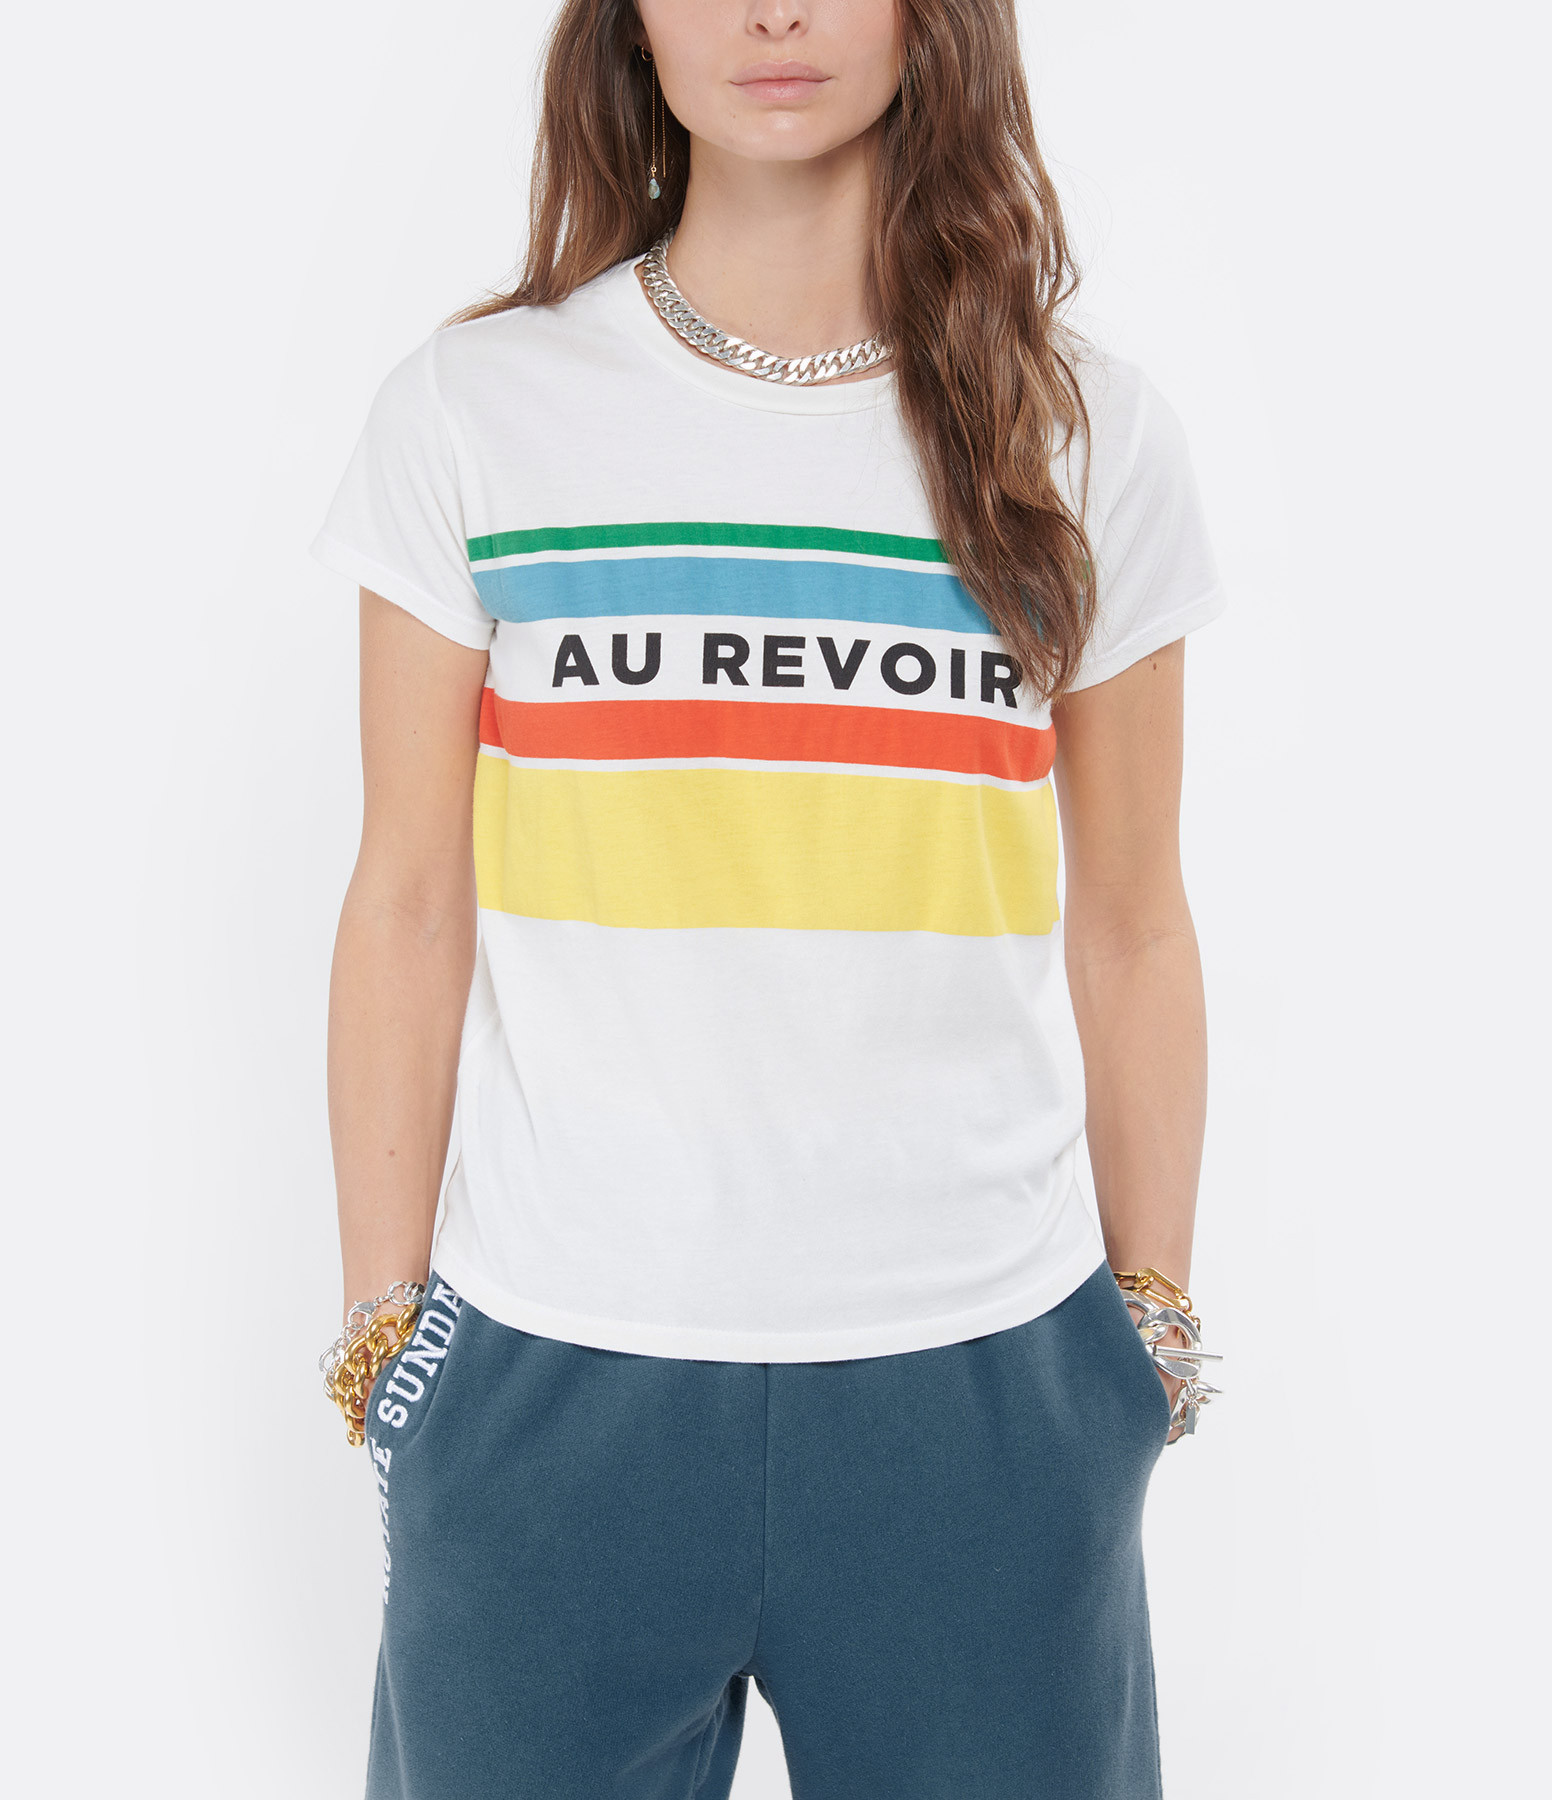 MOTHER - Tee-shirt The Boxy Goodie Goodie Coton Au Revoir